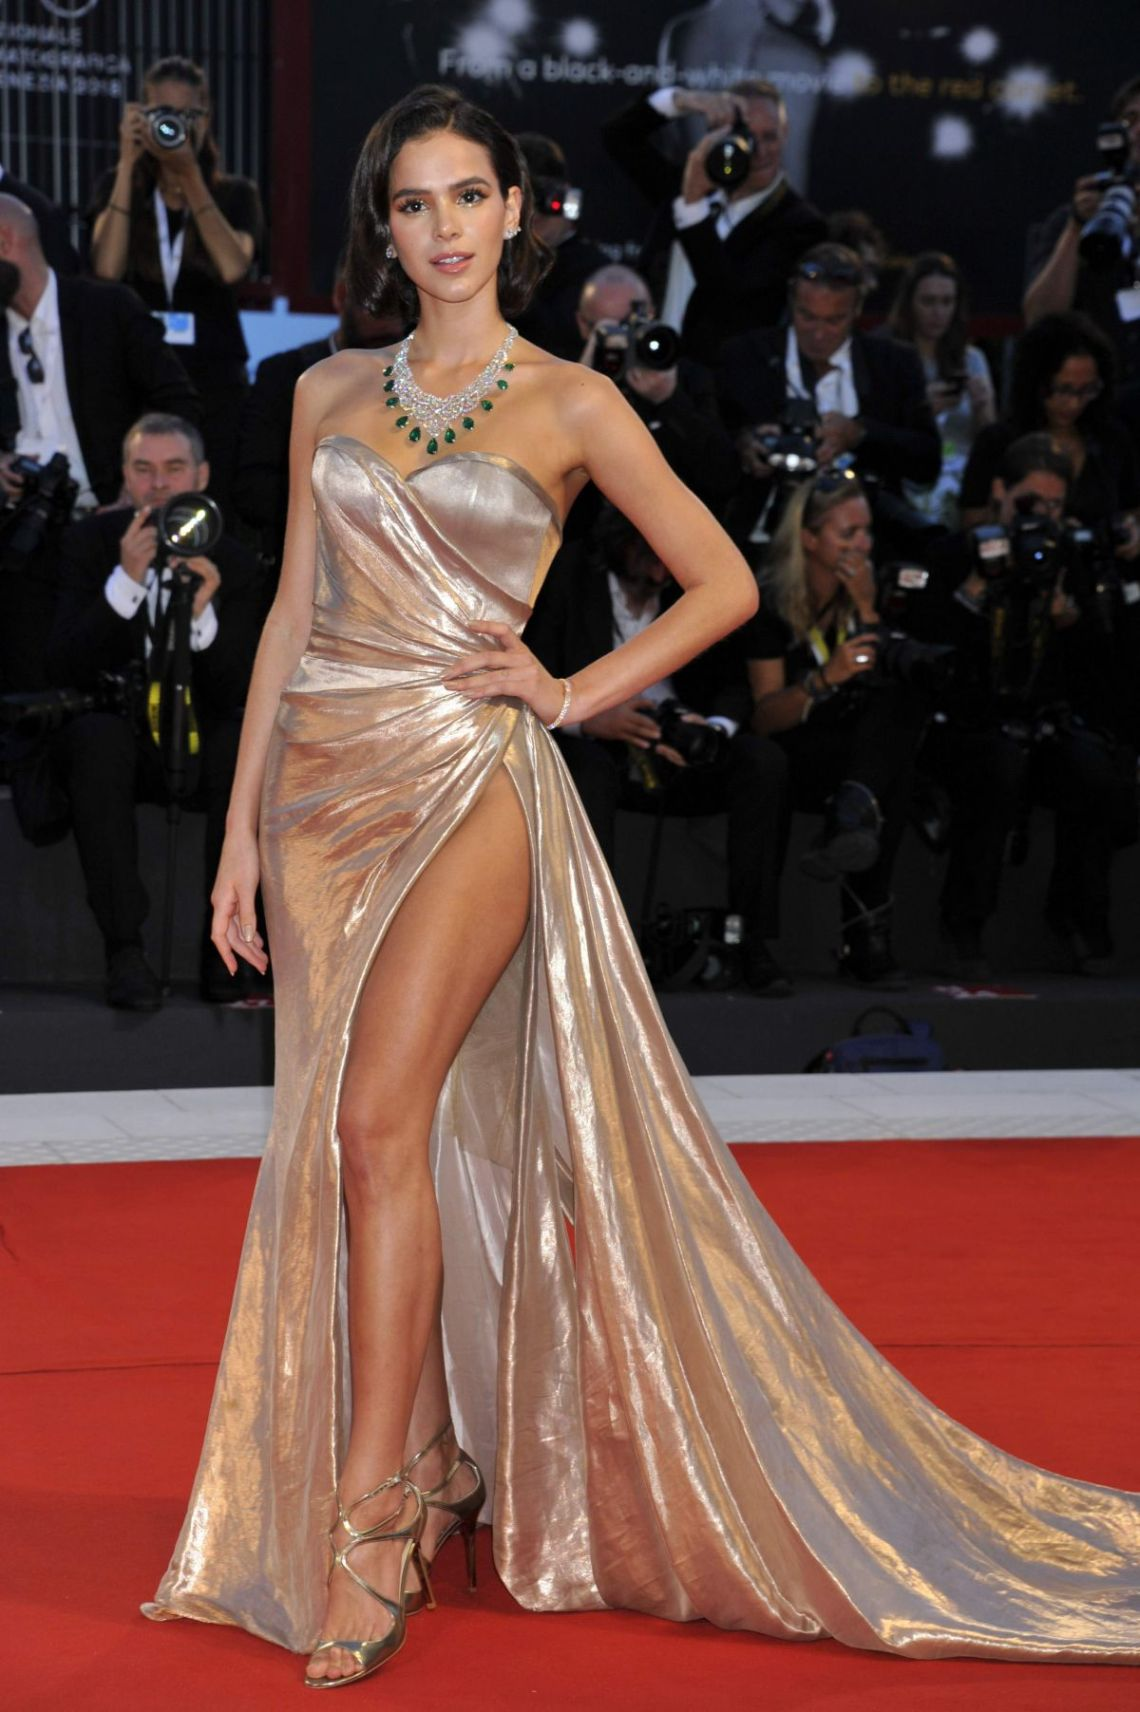 bruna-marquezine-at-the-sisters-brothers-screening-at-the-75th-venice-film-festival-2.jpg